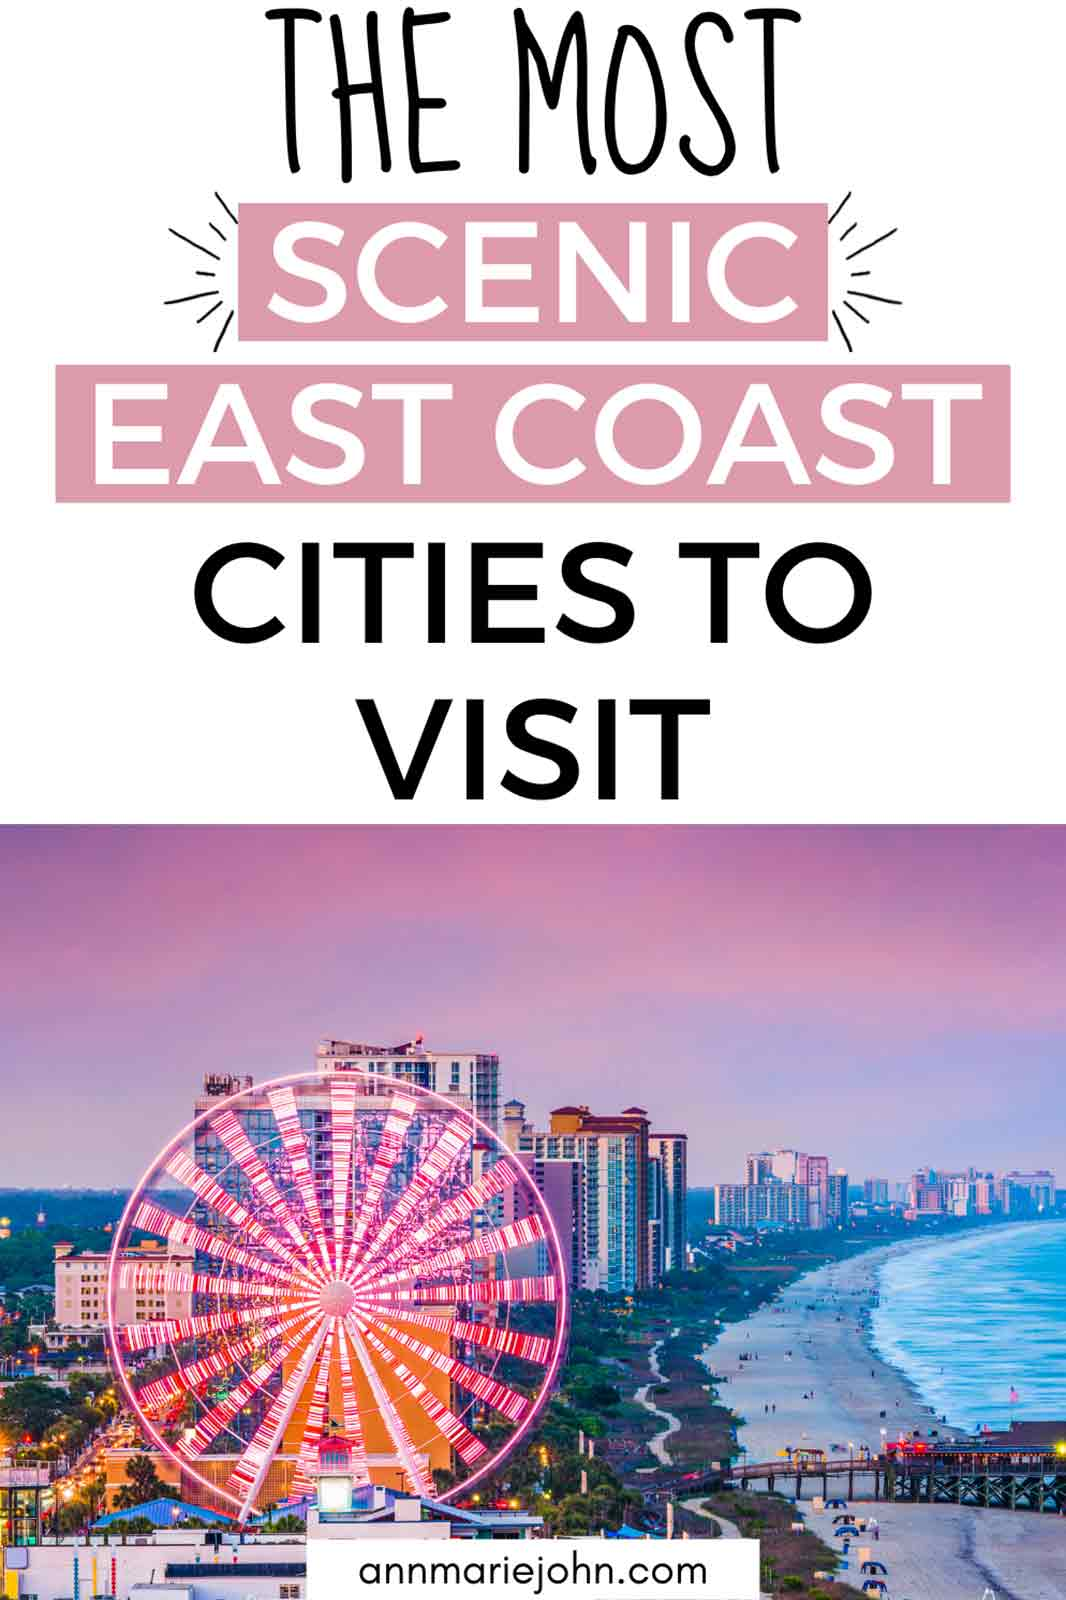 The Most Scenic East Coast Cities to Visit